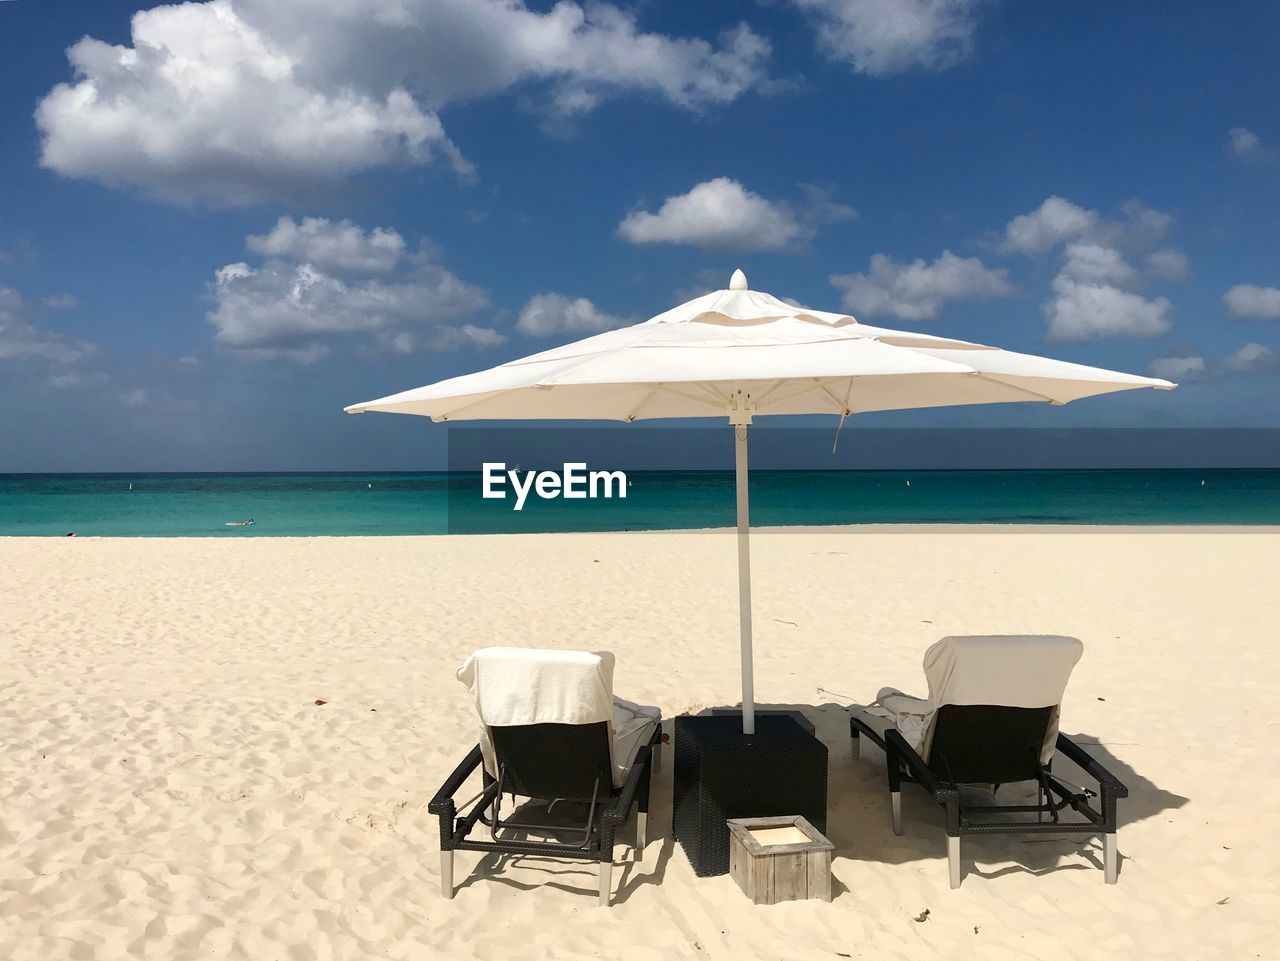 chair, beach, sea, water, sky, land, sand, horizon over water, seat, cloud - sky, sunlight, horizon, scenics - nature, absence, shade, tranquil scene, parasol, nature, umbrella, no people, outdoors